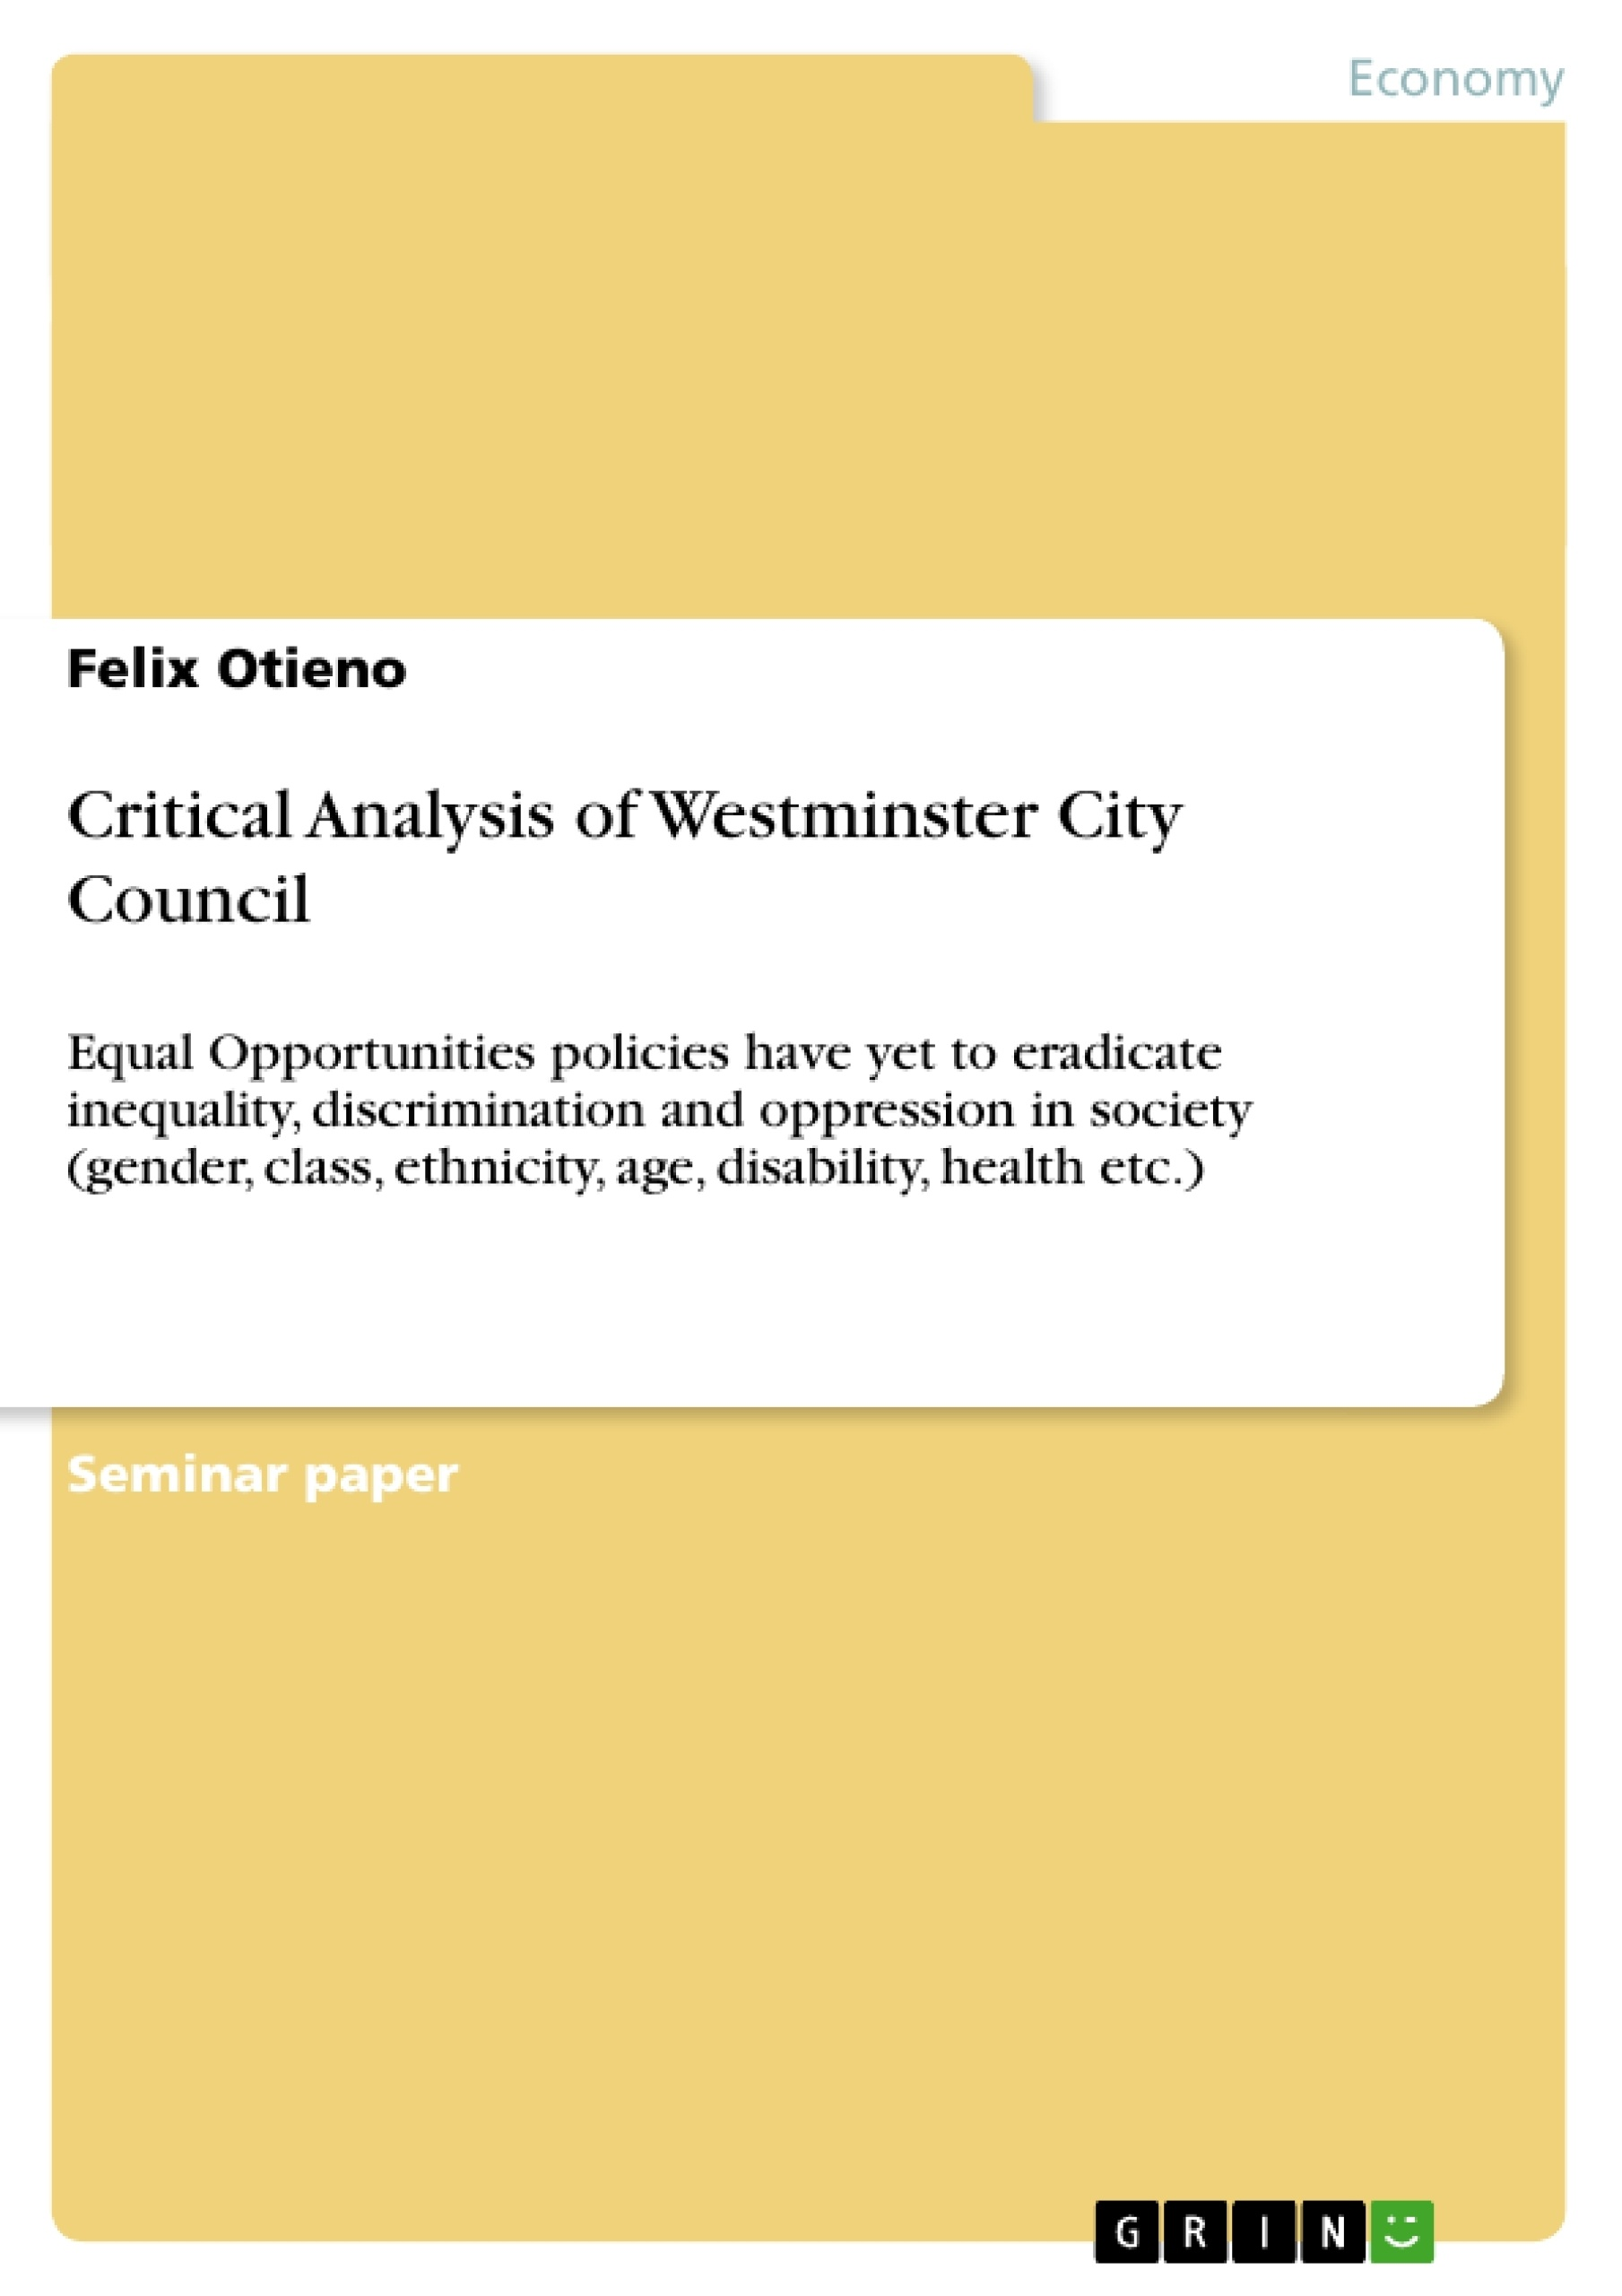 Title: Critical Analysis of Westminster City Council